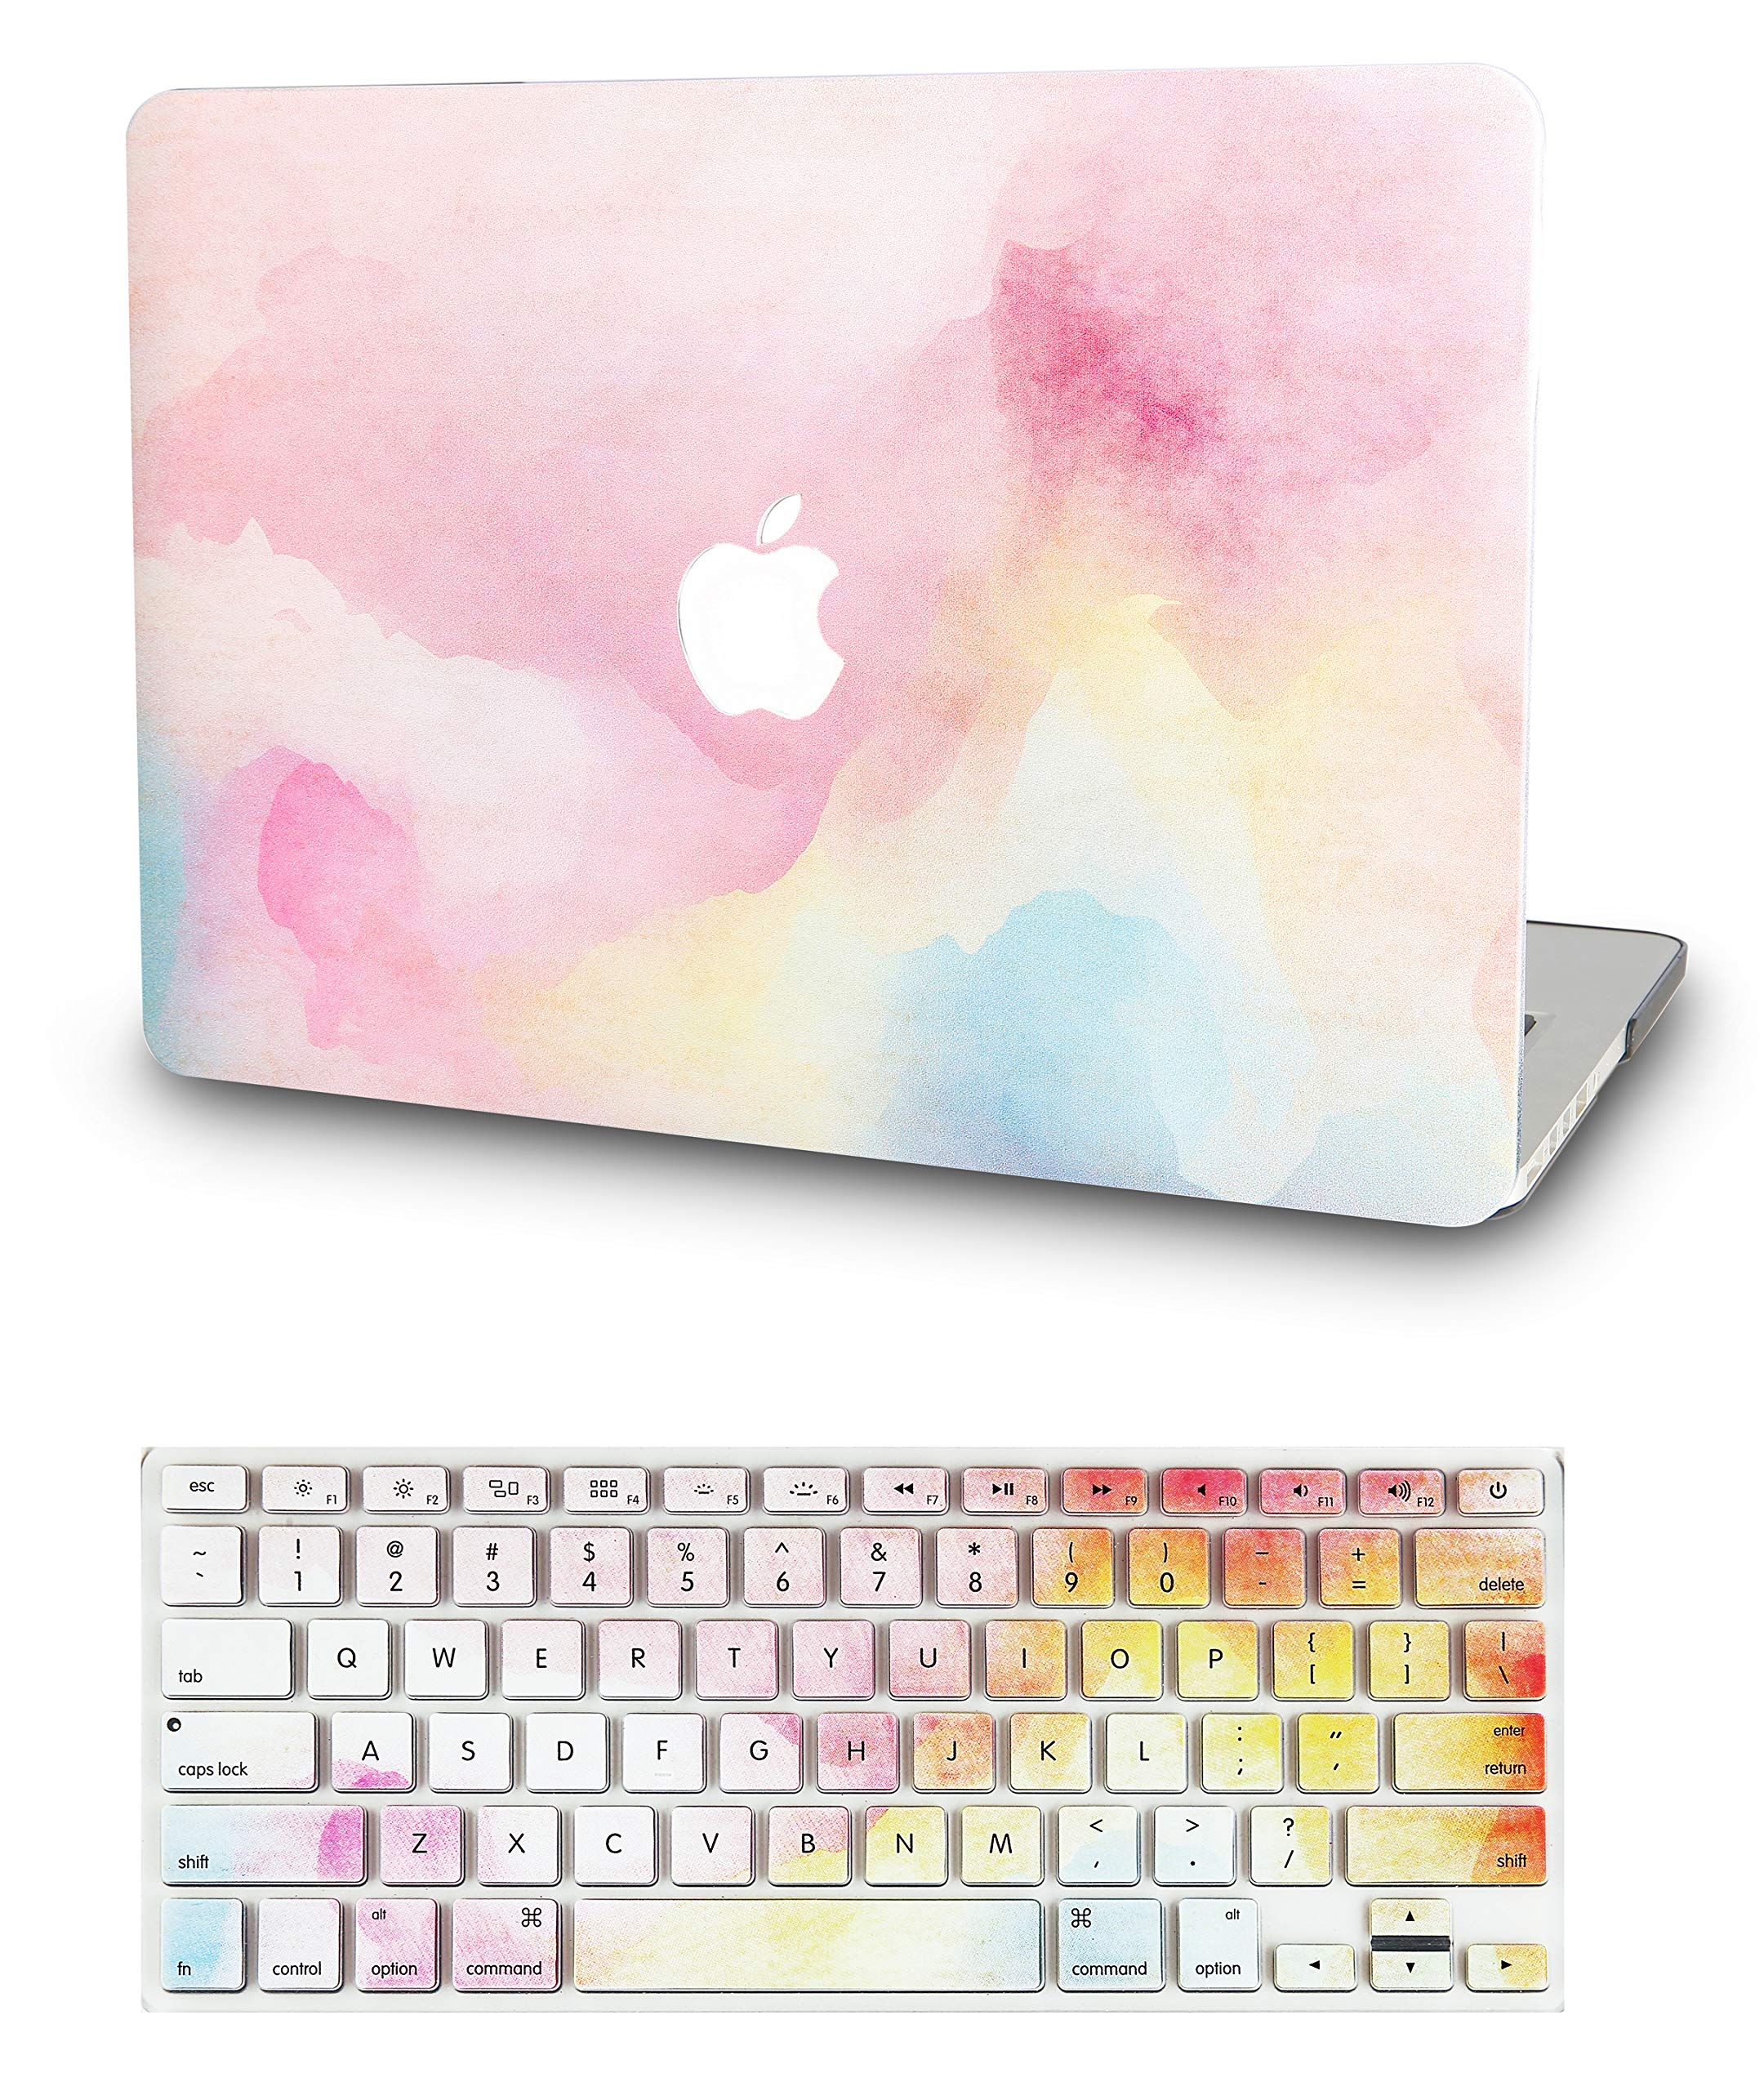 "KECC Laptop Case for MacBook Pro 15"" (2019/2018/2017/2016) w/Keyboard Cover Plastic Hard Shell A1990/A1707 Touch Bar 2 in 1 Bundle (Rainbow Mist)"